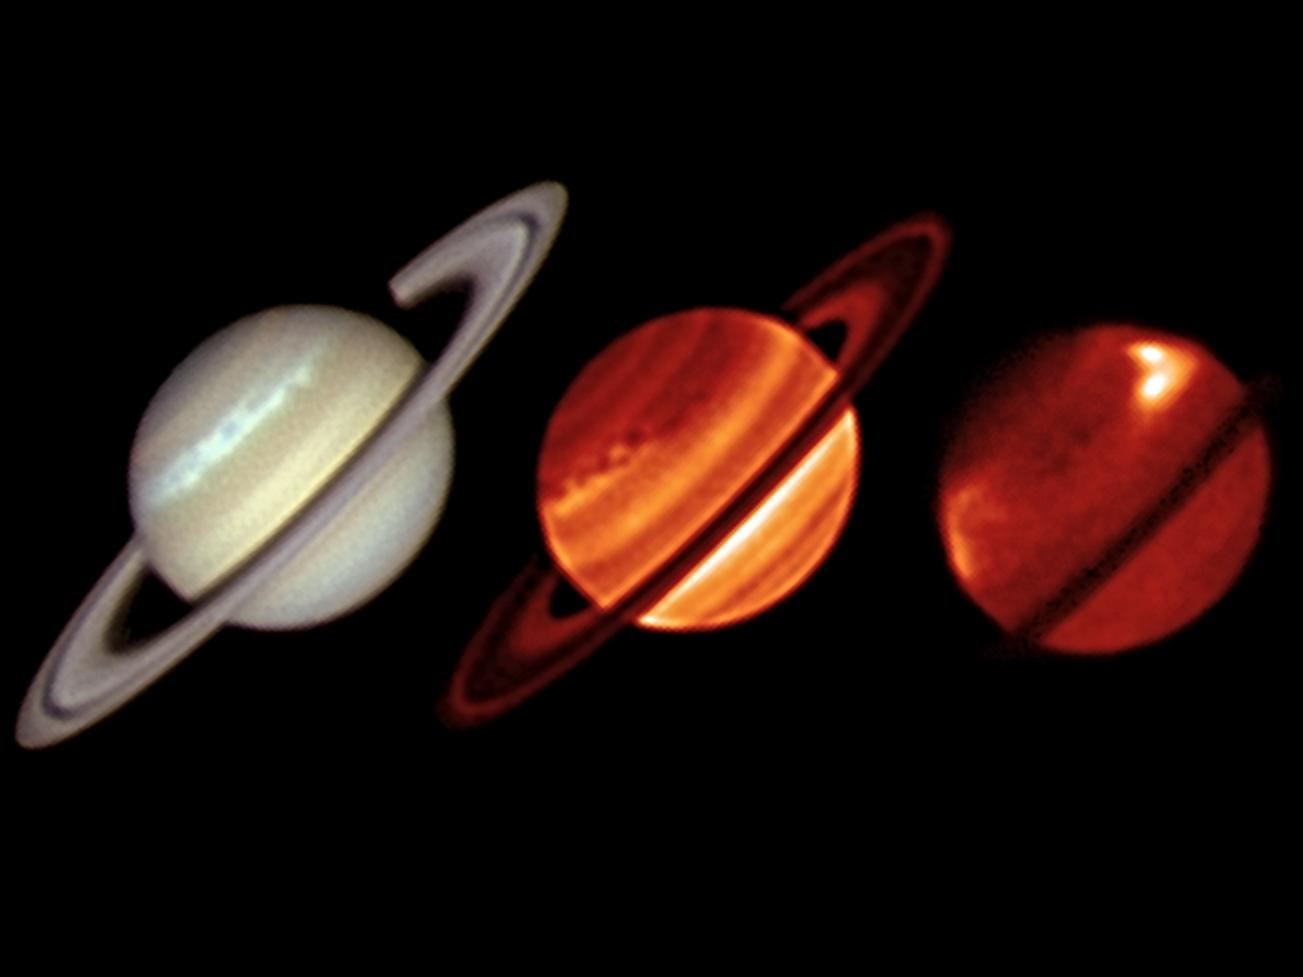 A comparison of thermal infrared images of Saturn from the European Southern Observatory's Very Large Telescope (VISIR instrument) is shown, with an amateur visible-light view from Trevor Barry (Broken Hill, Australia) obtained on Jan. 19, 2011The images